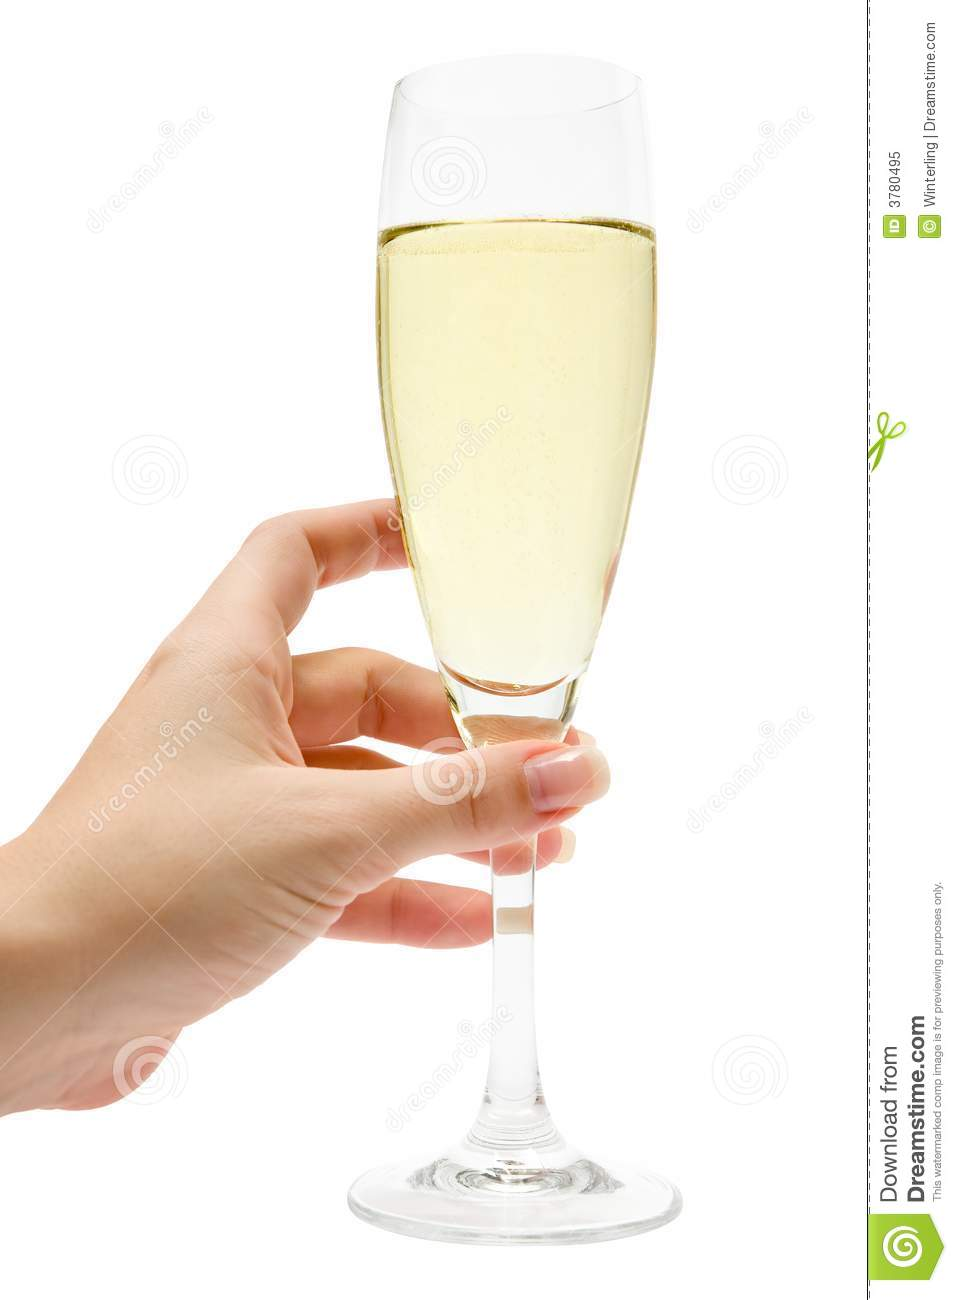 Holding A Glass Of Champagne Royalty Free Stock Photo